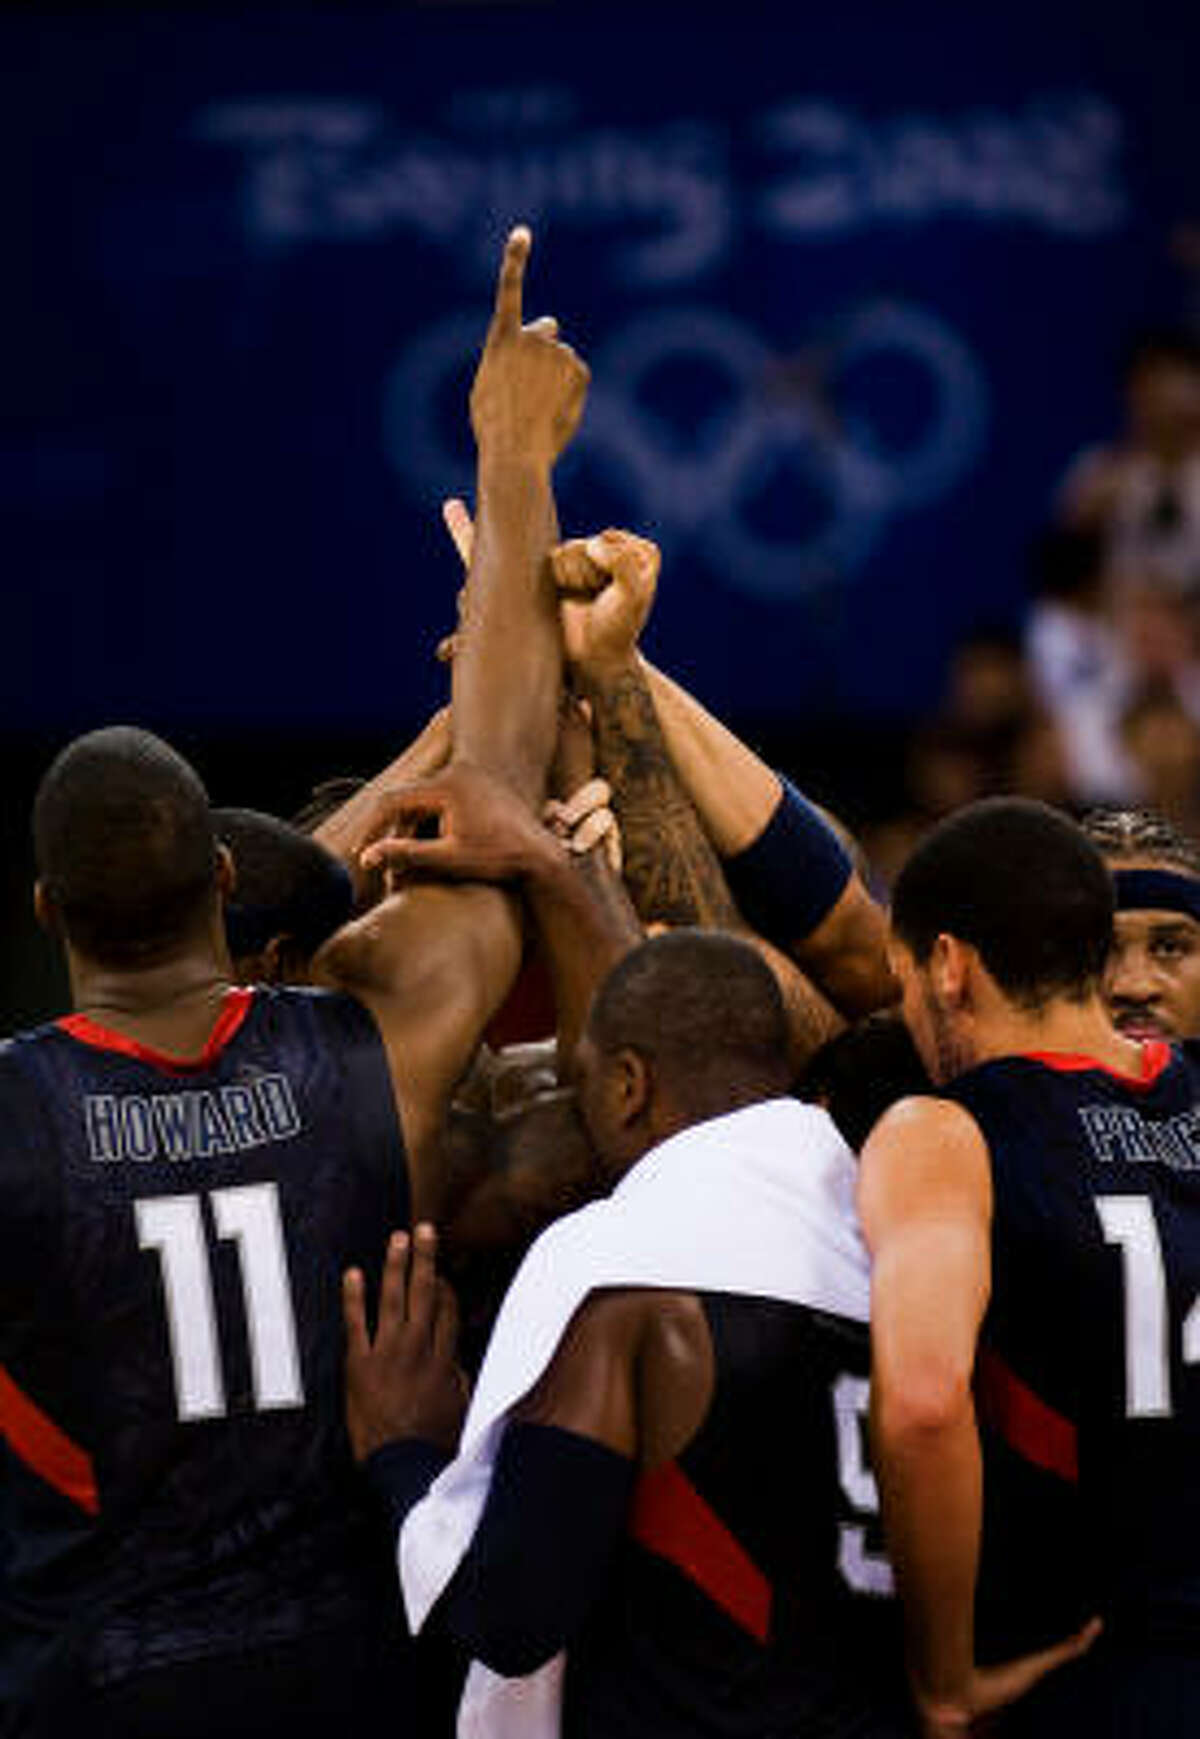 Team USA players huddle at center court after defeating Argentina 101-81 to advance to the gold medal game.